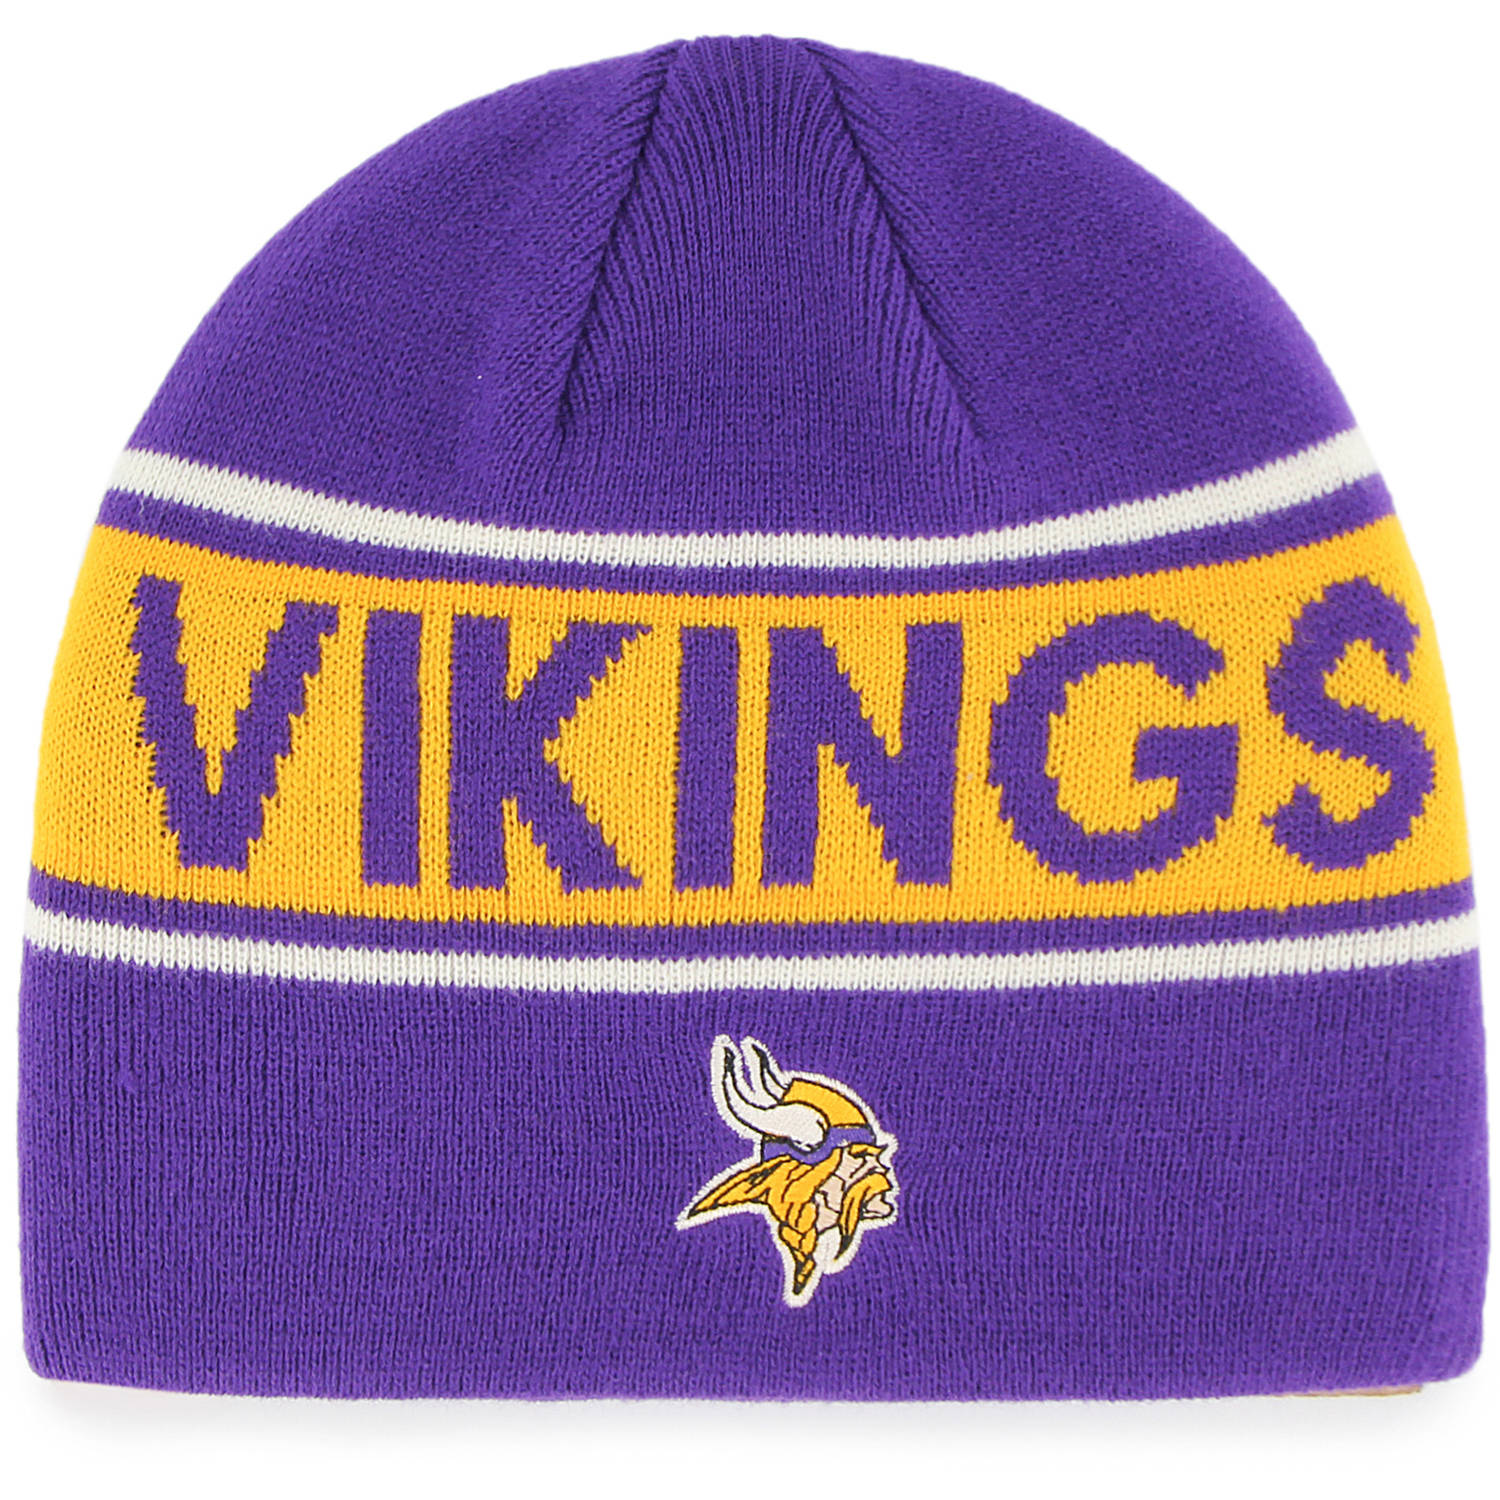 NFL Minnesota Vikings Bonneville Knit Beanie by Fan Favorite